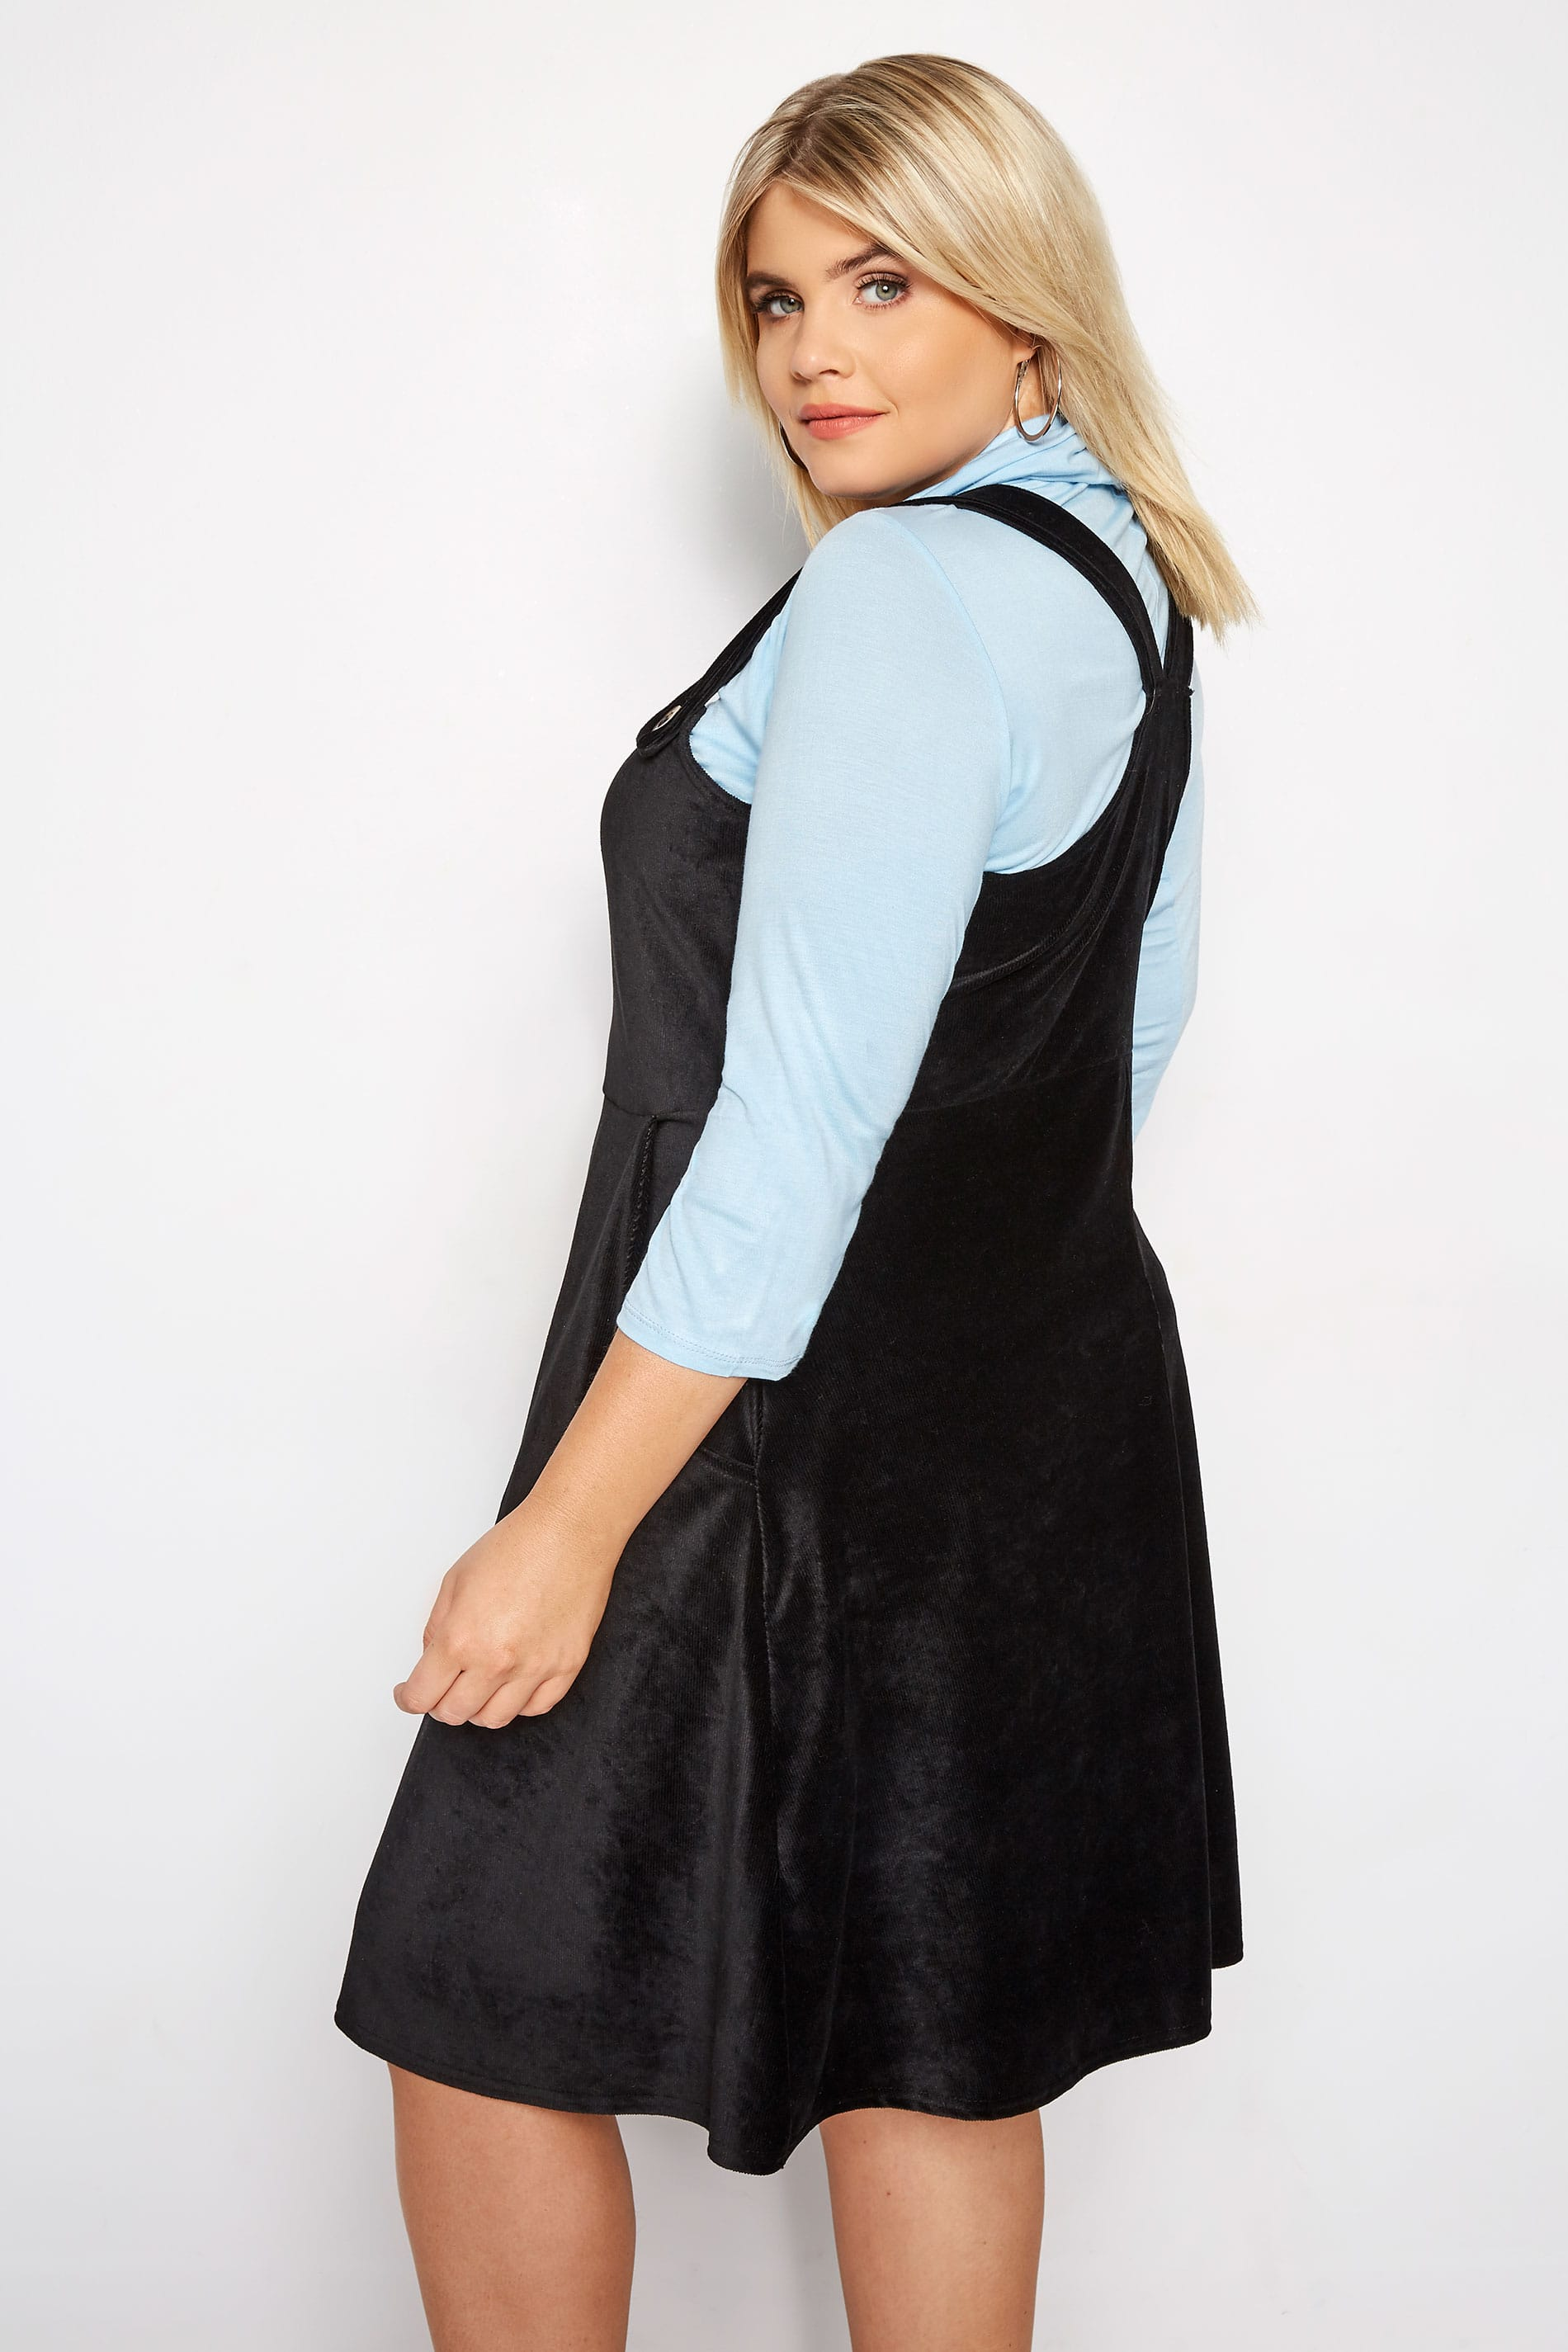 6a23d4e0486 Plus Size LIMITED COLLECTION Black Jersey Corduroy Pinafore Dress ...